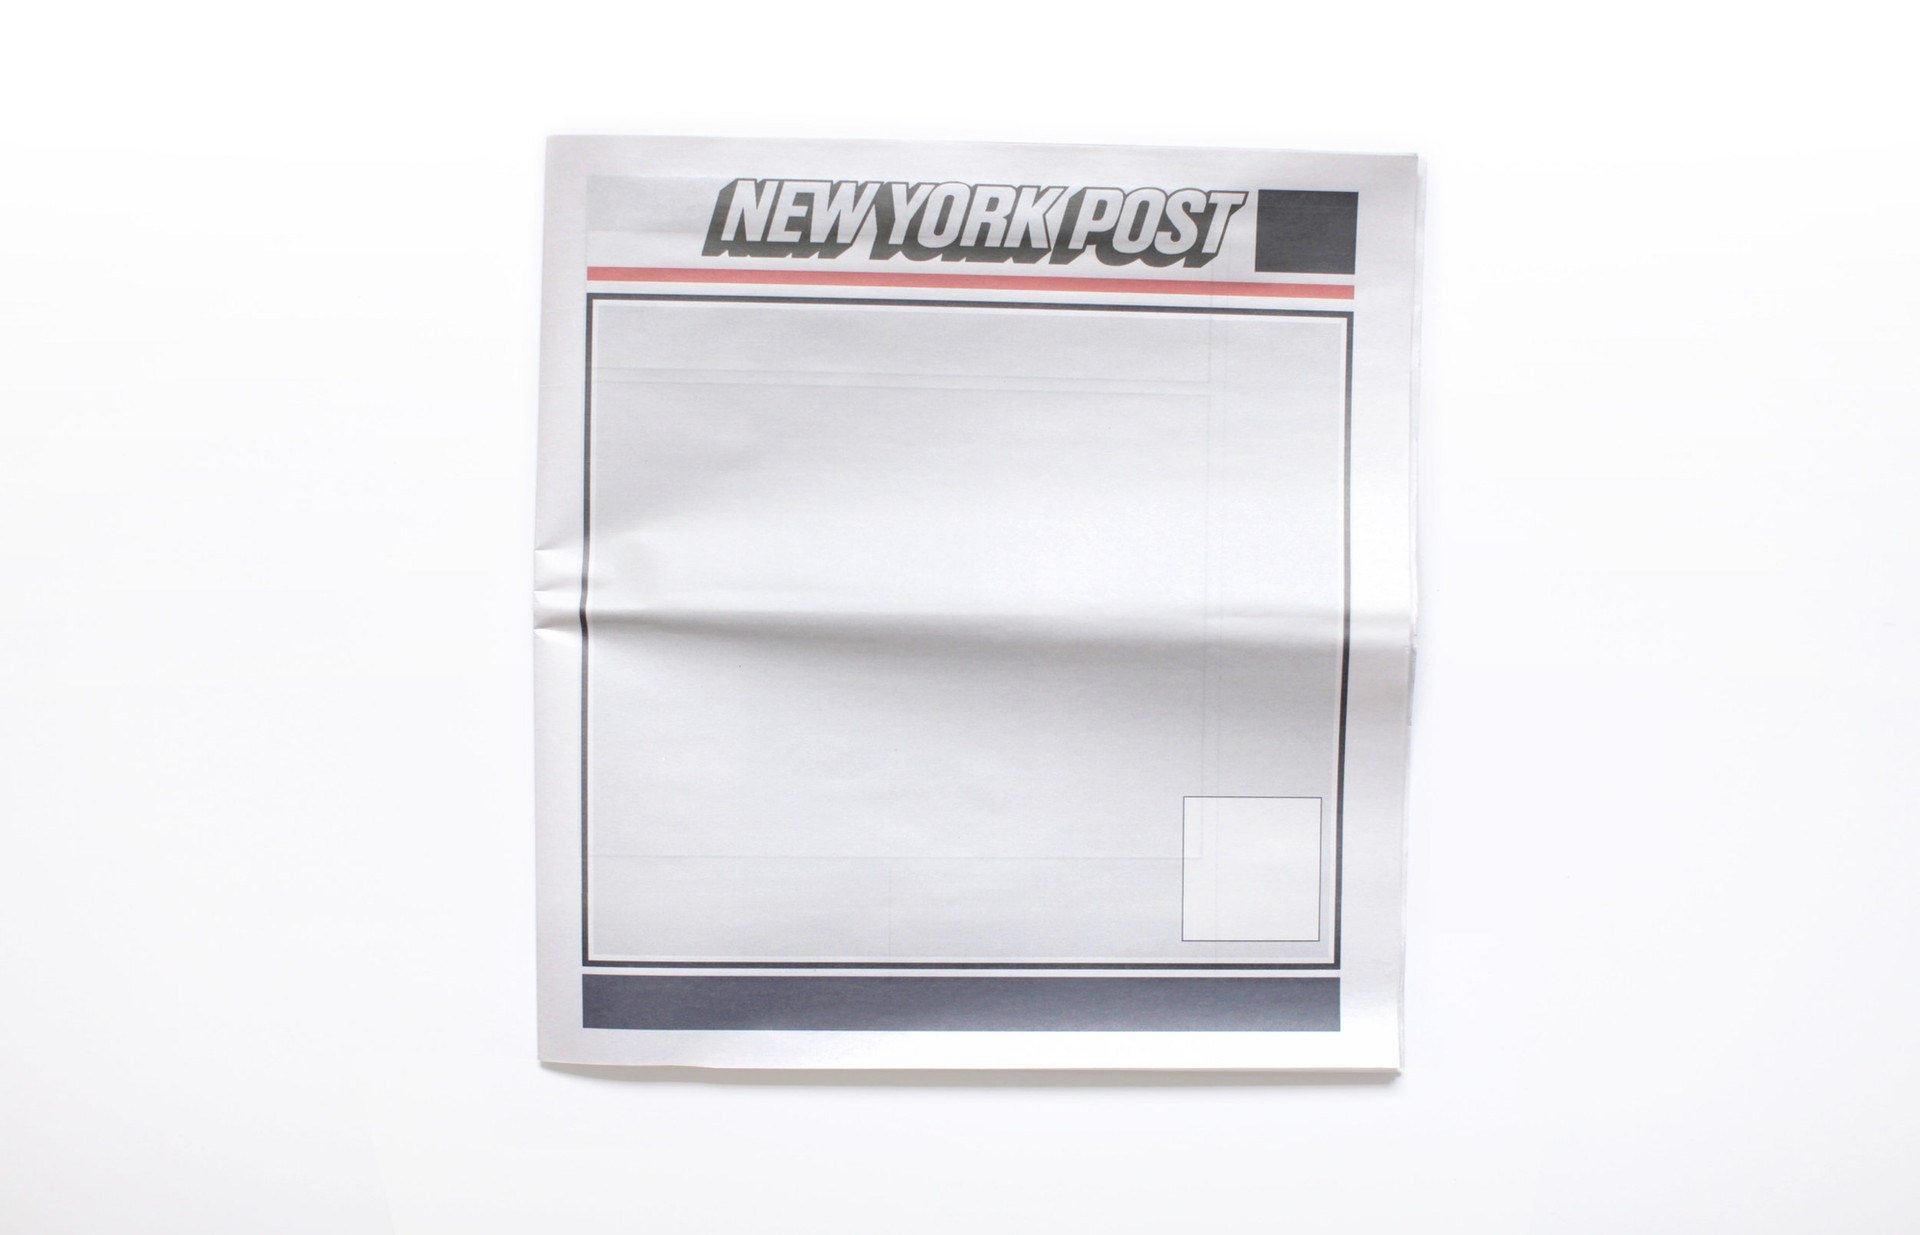 NOTHING IN THE NEW YORK POST: Newspapers from around the world with nothing in them.